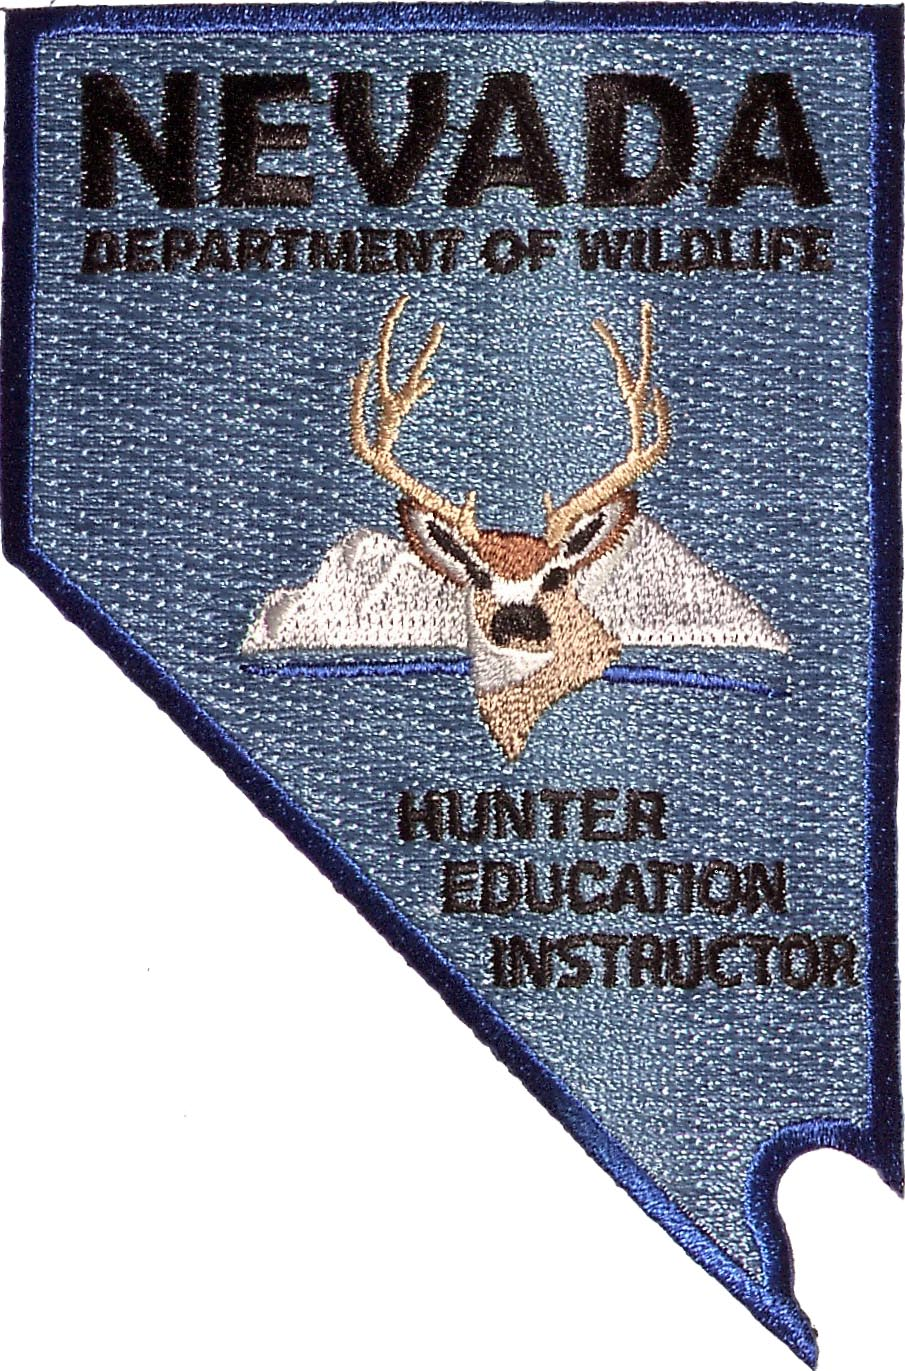 Department of Wildlife Emblem